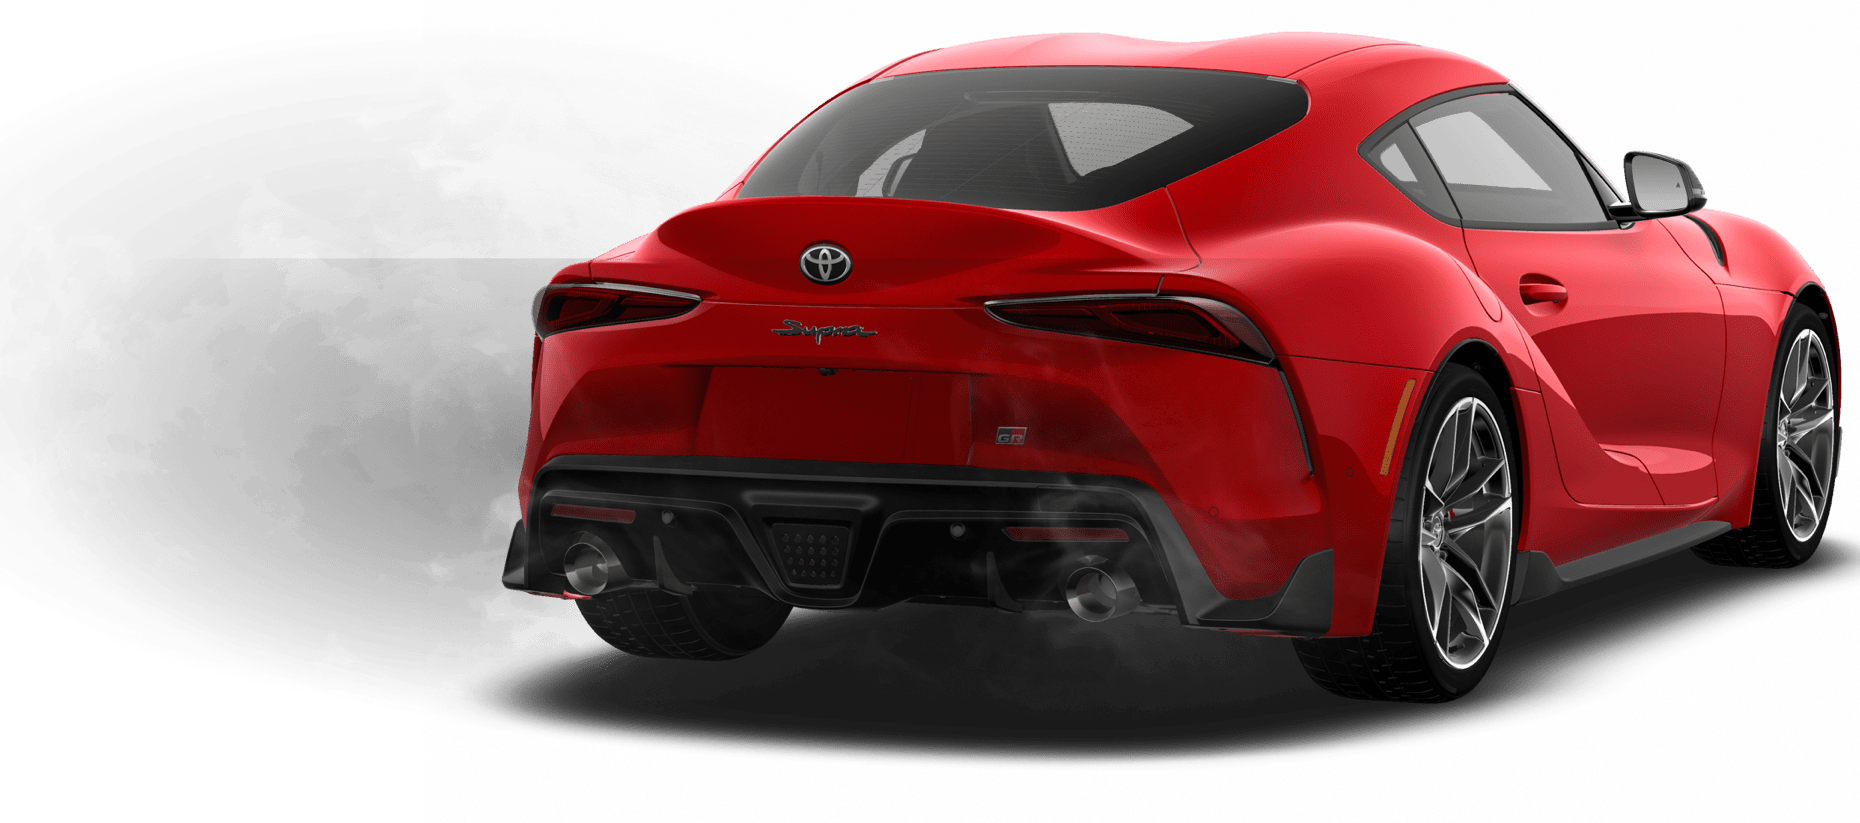 2021 GR Supra shown in Renaissance Red 2.0